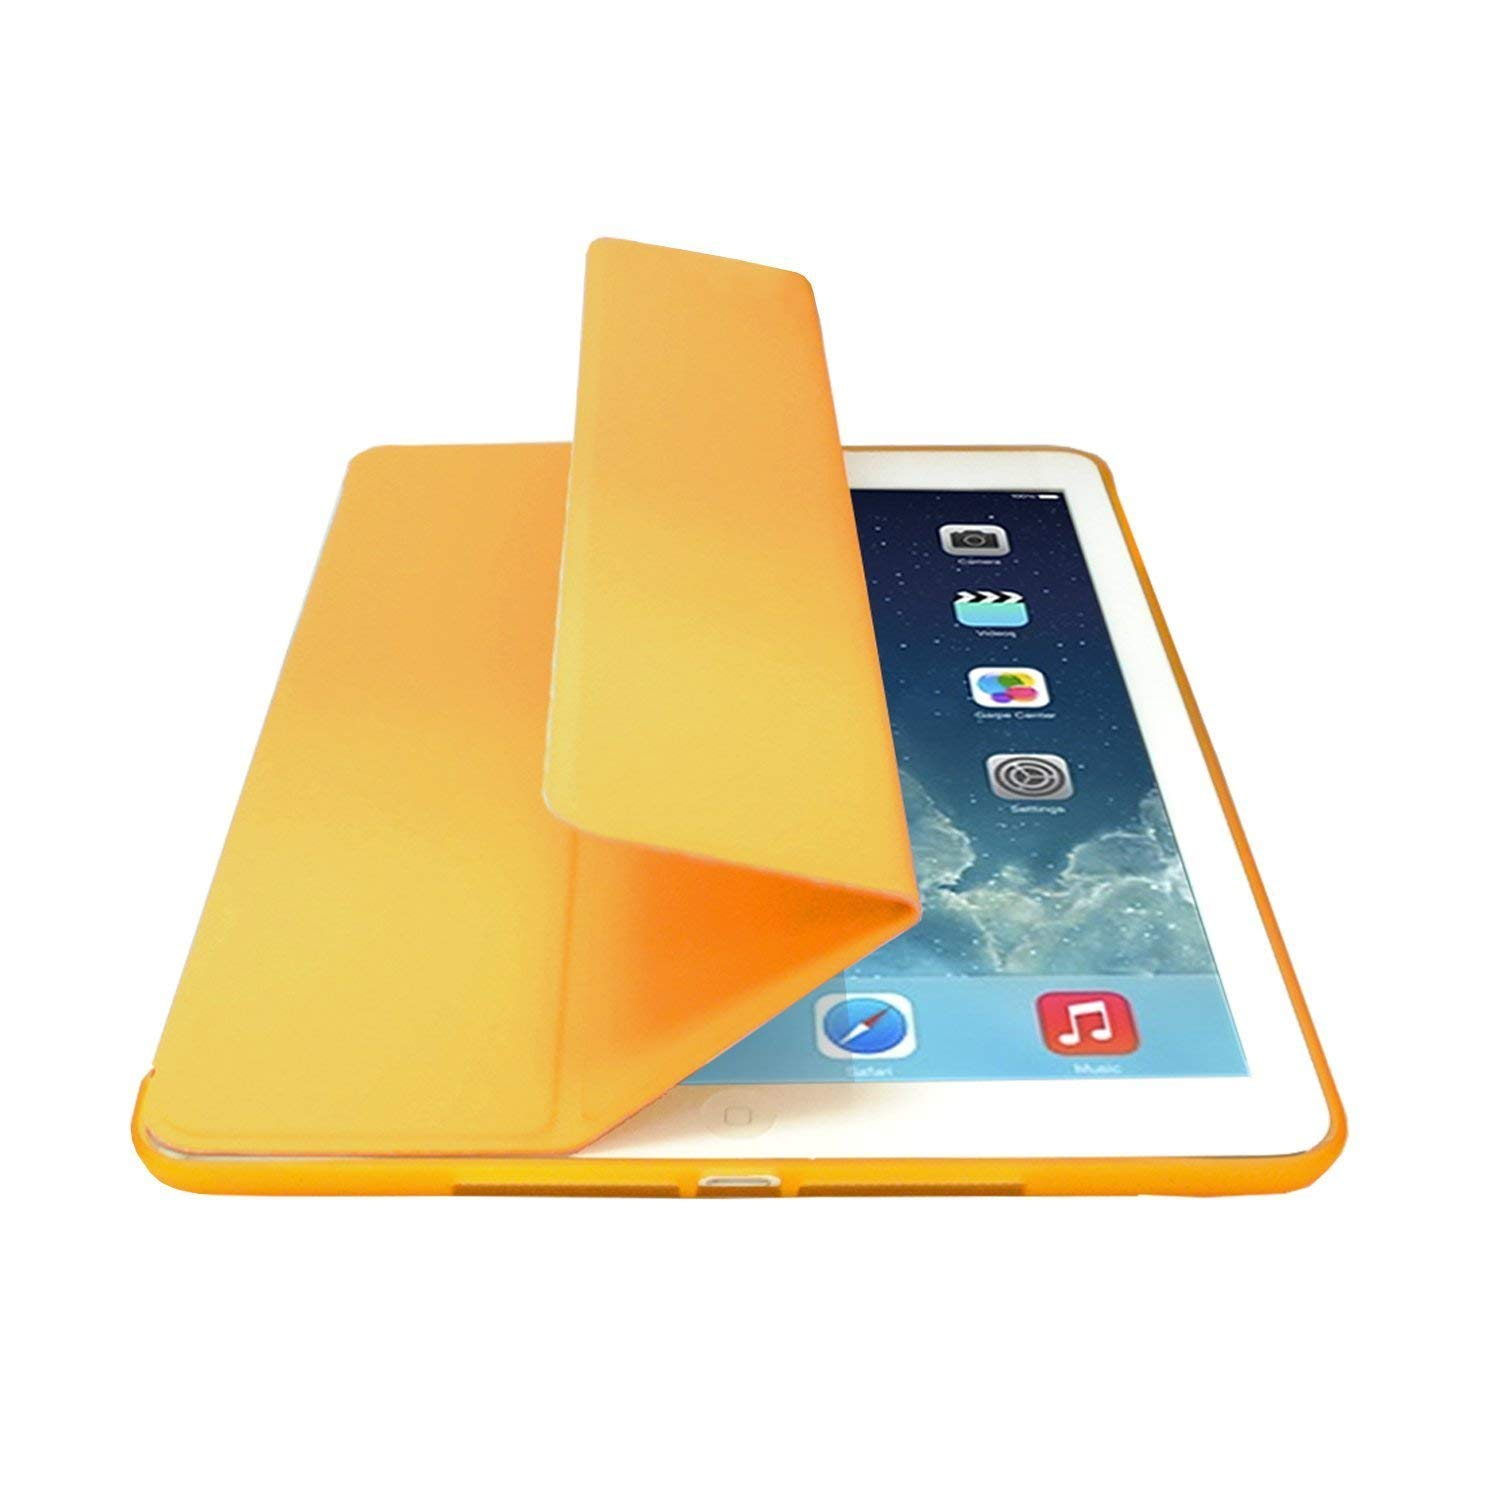 MIIU by Digiparts Ultra Thin Magnetic Smart Cover & Clear Back Case for Apple iPad Air(5th Gen), Yellow - image 1 of 5